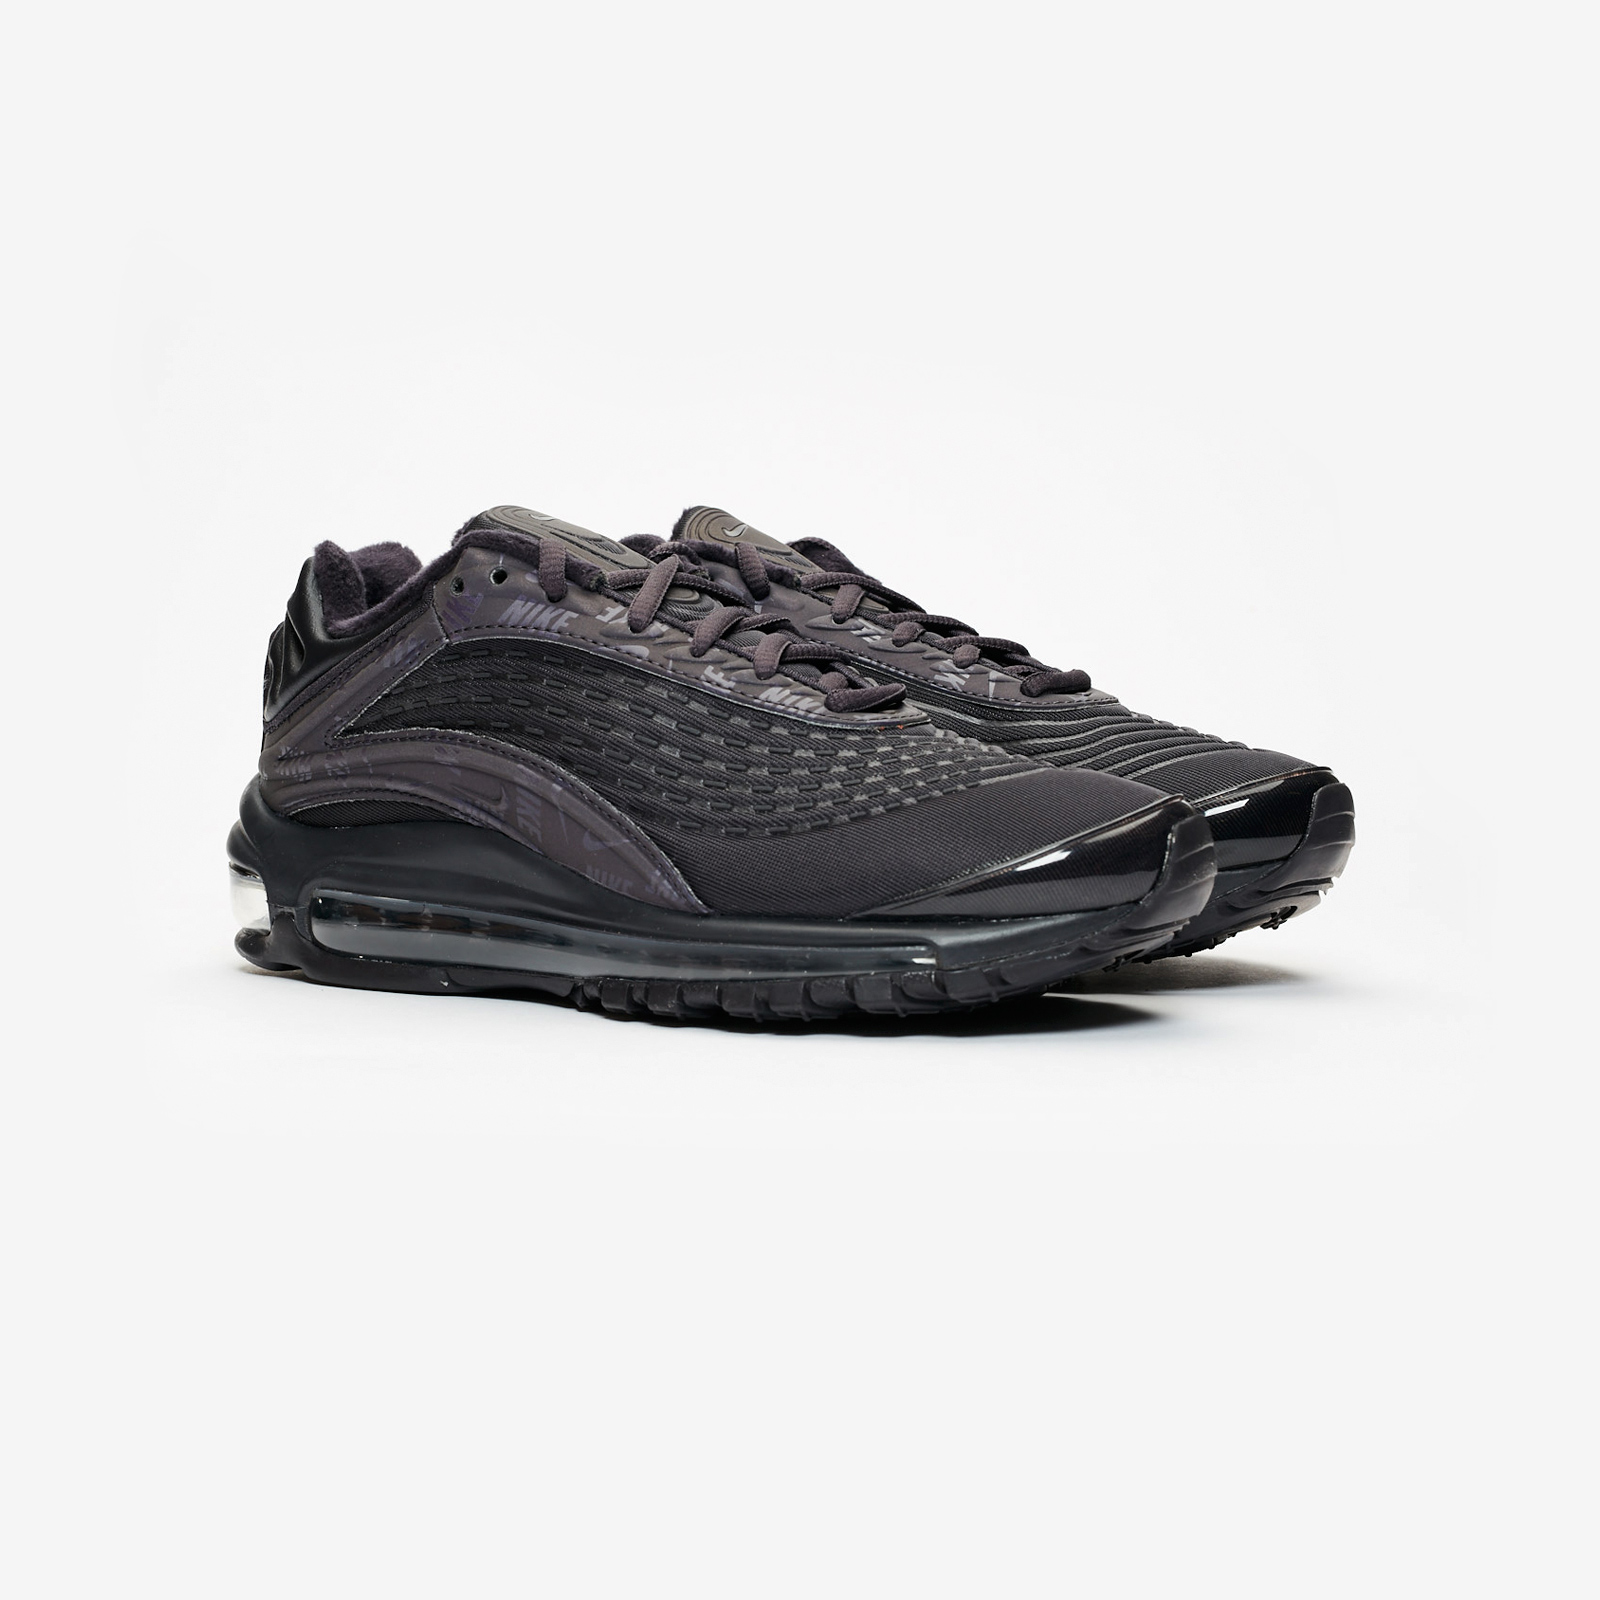 Nike Wmns Air Max Deluxe SE At8692 001 Sneakersnstuff